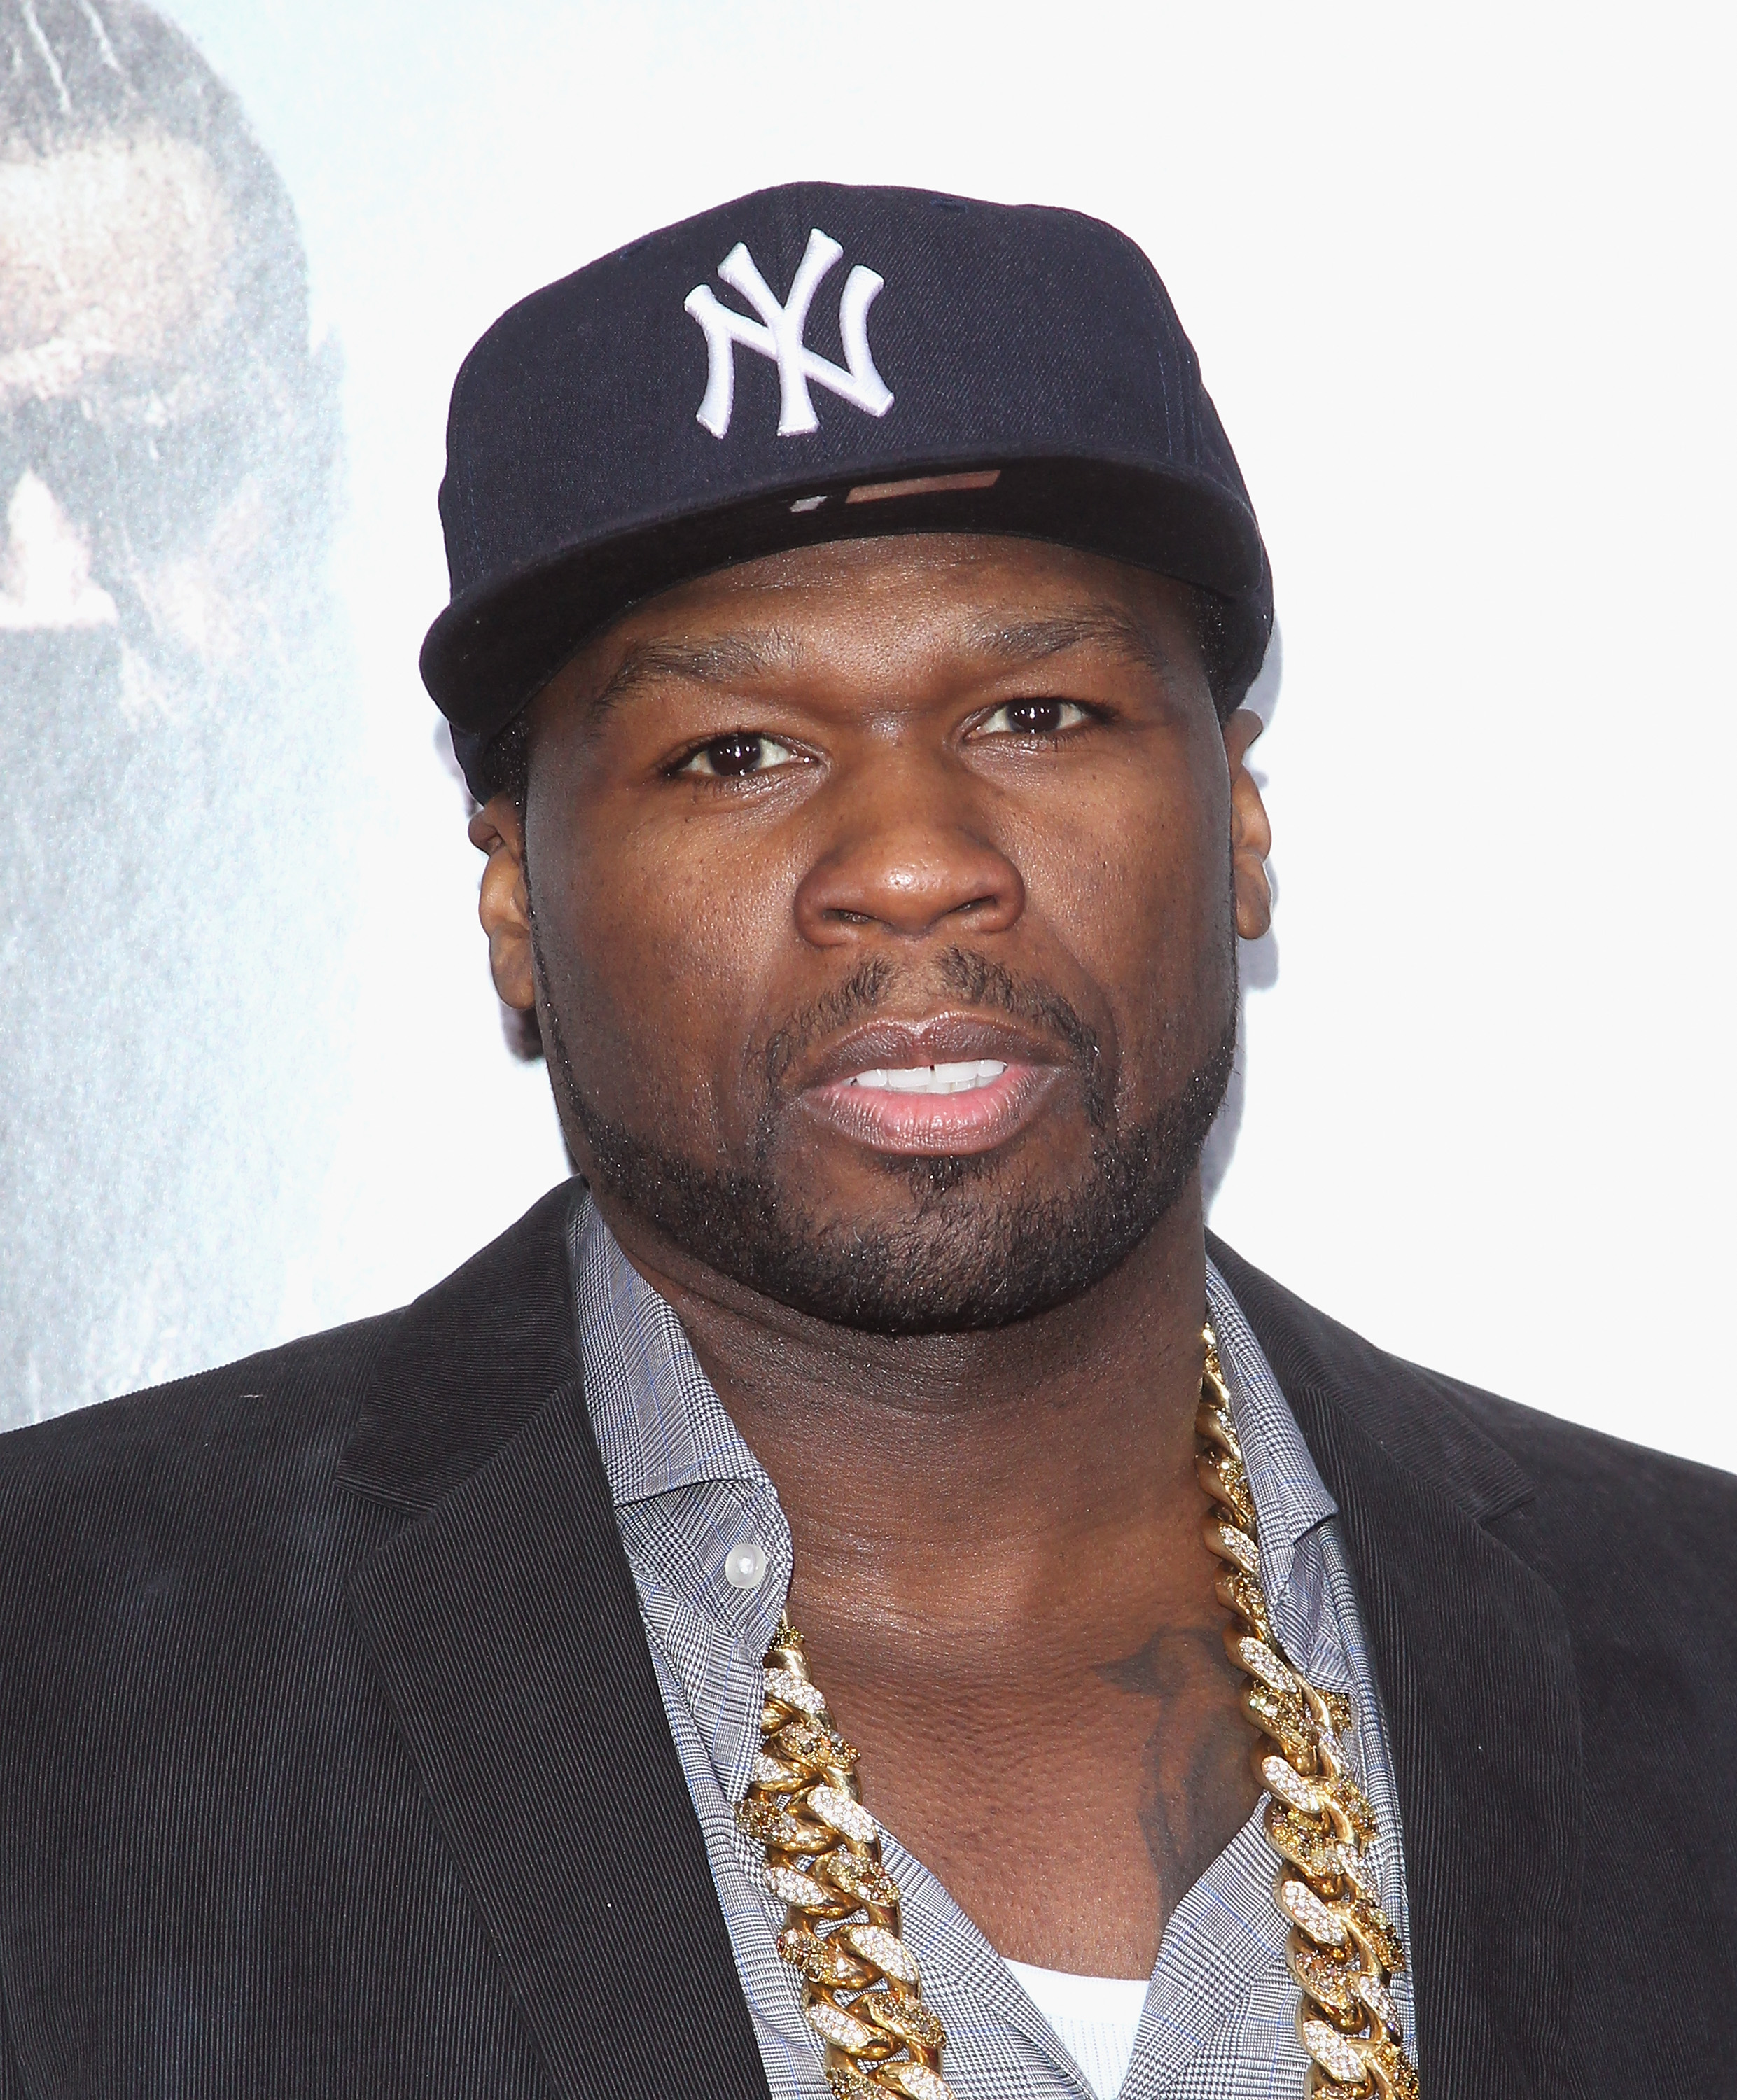 Rapper/actor 50 Cent attends the  Noah  New York Premiere at Ziegfeld Theatre on March 26, 2014 in New York City.